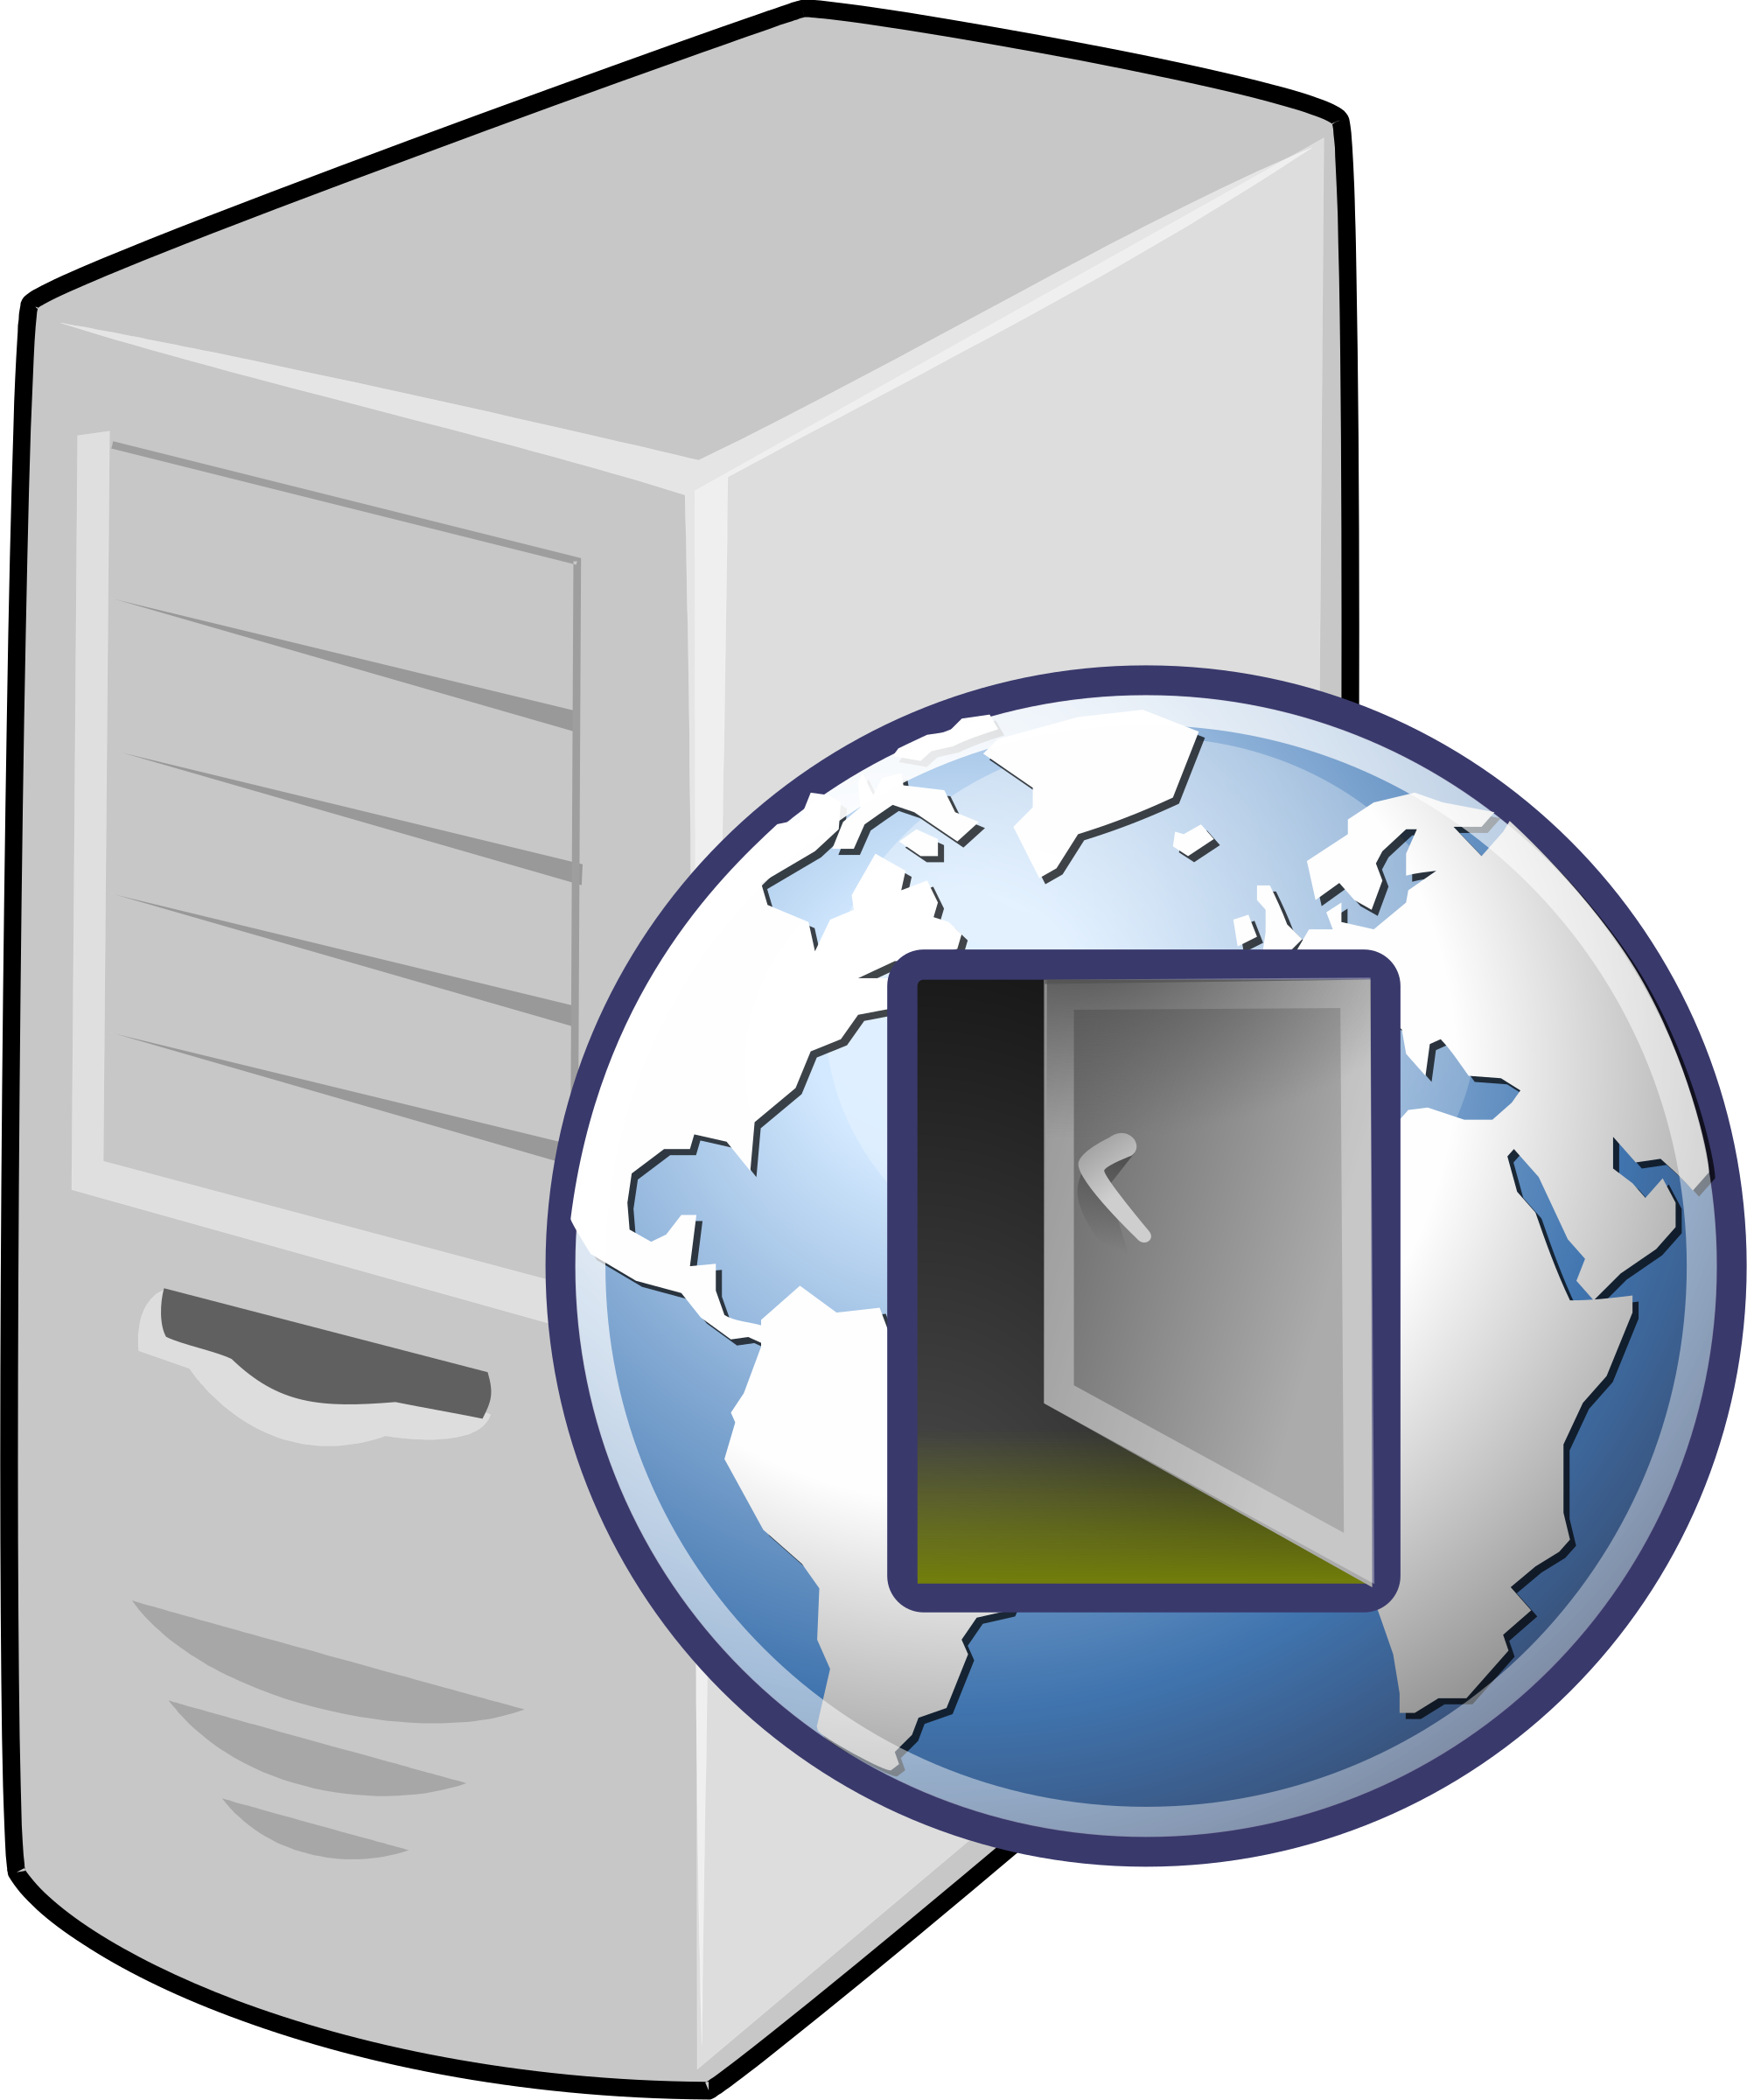 proxy server by lyte